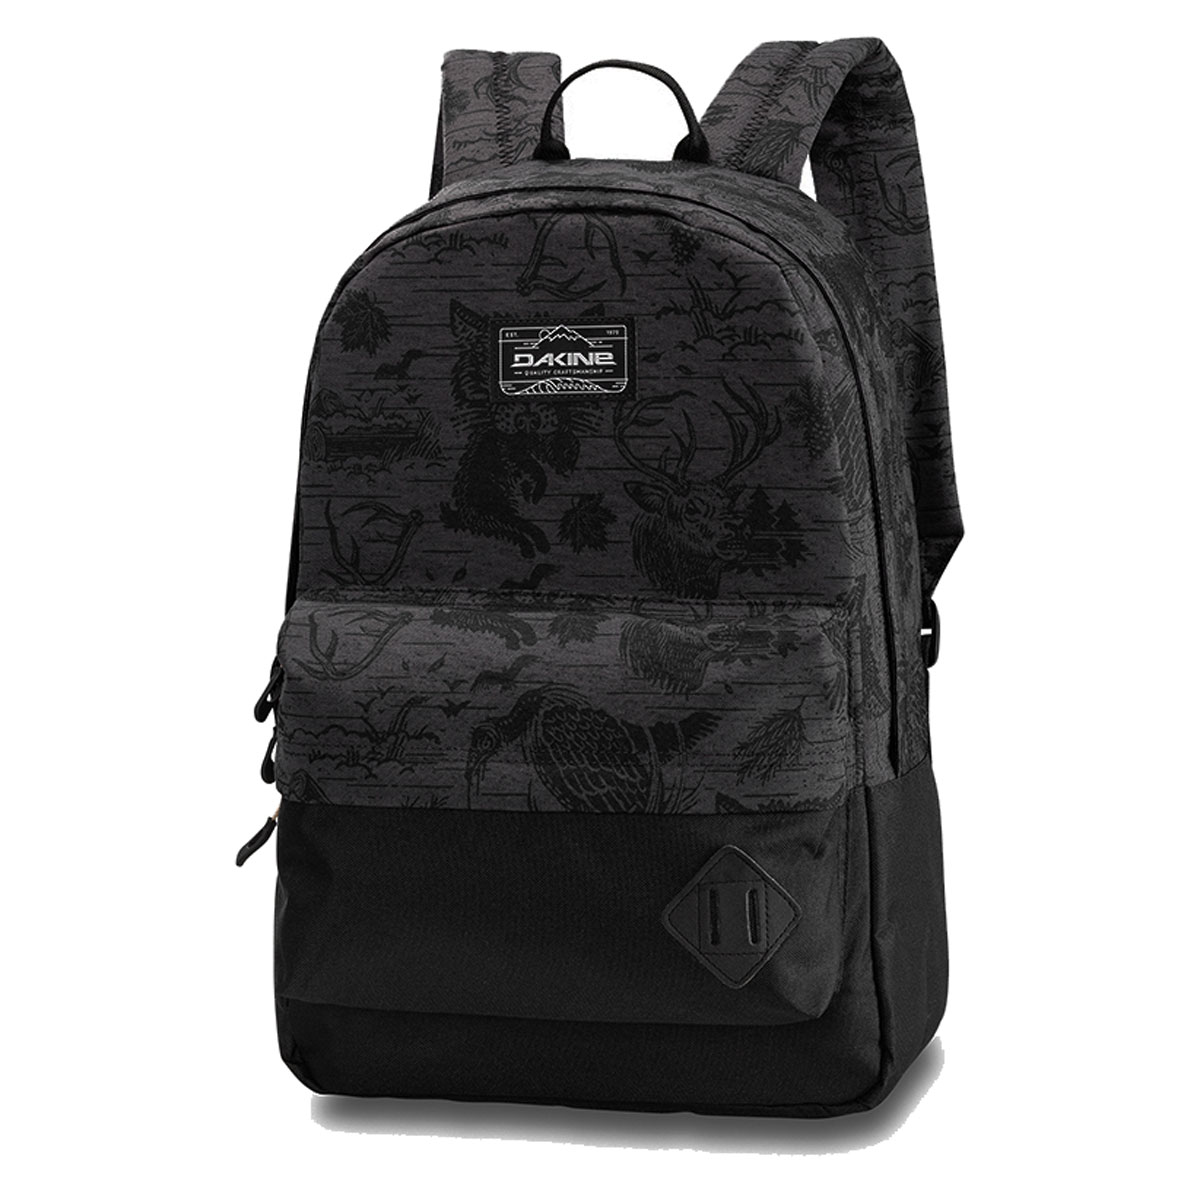 dakine 365 pack 21l w17 street pack rucksack mit laptoptasche 08130085 muskelkater sport k ln gmbh. Black Bedroom Furniture Sets. Home Design Ideas